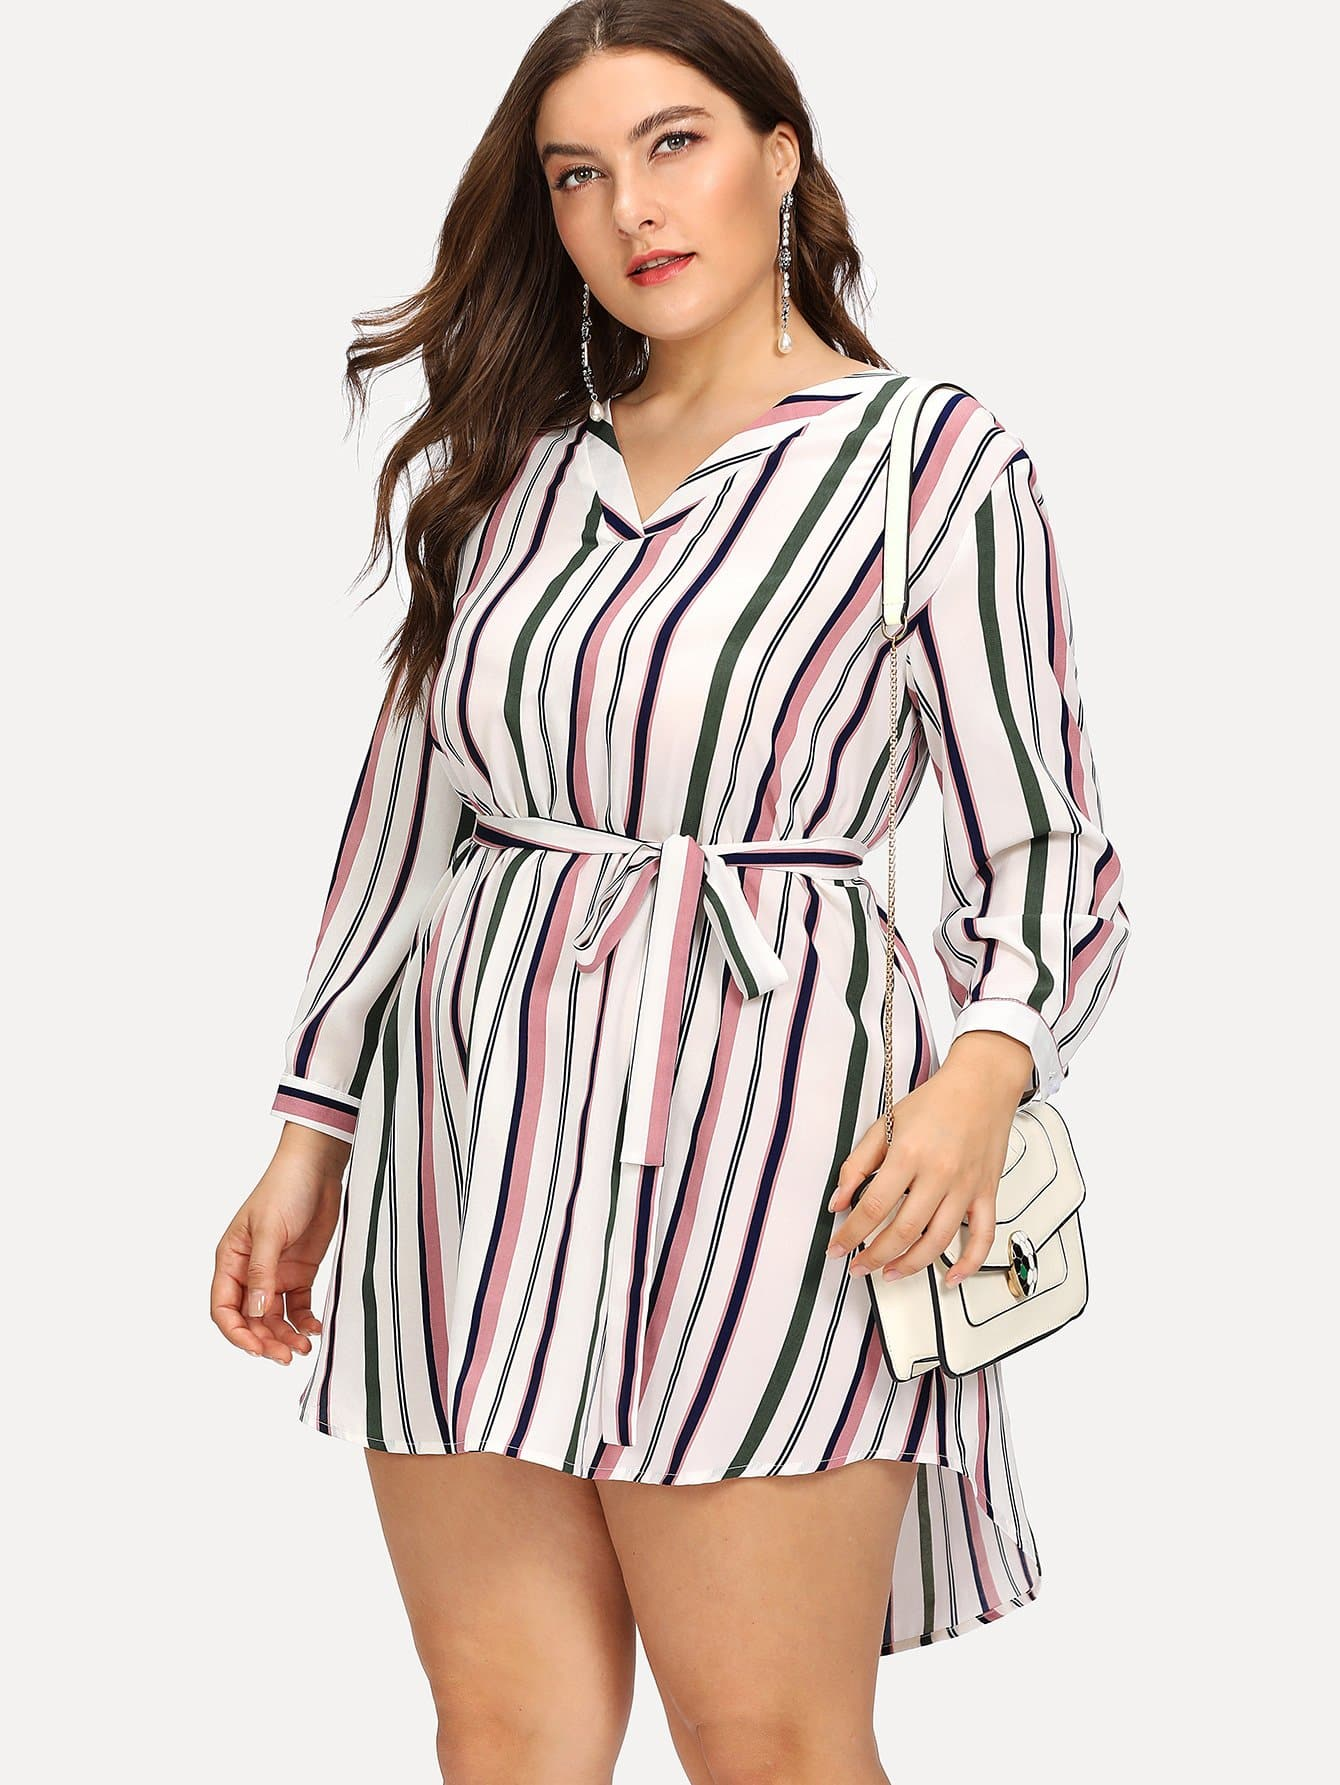 Vertical Striped Step Hem Dress met короткое платье